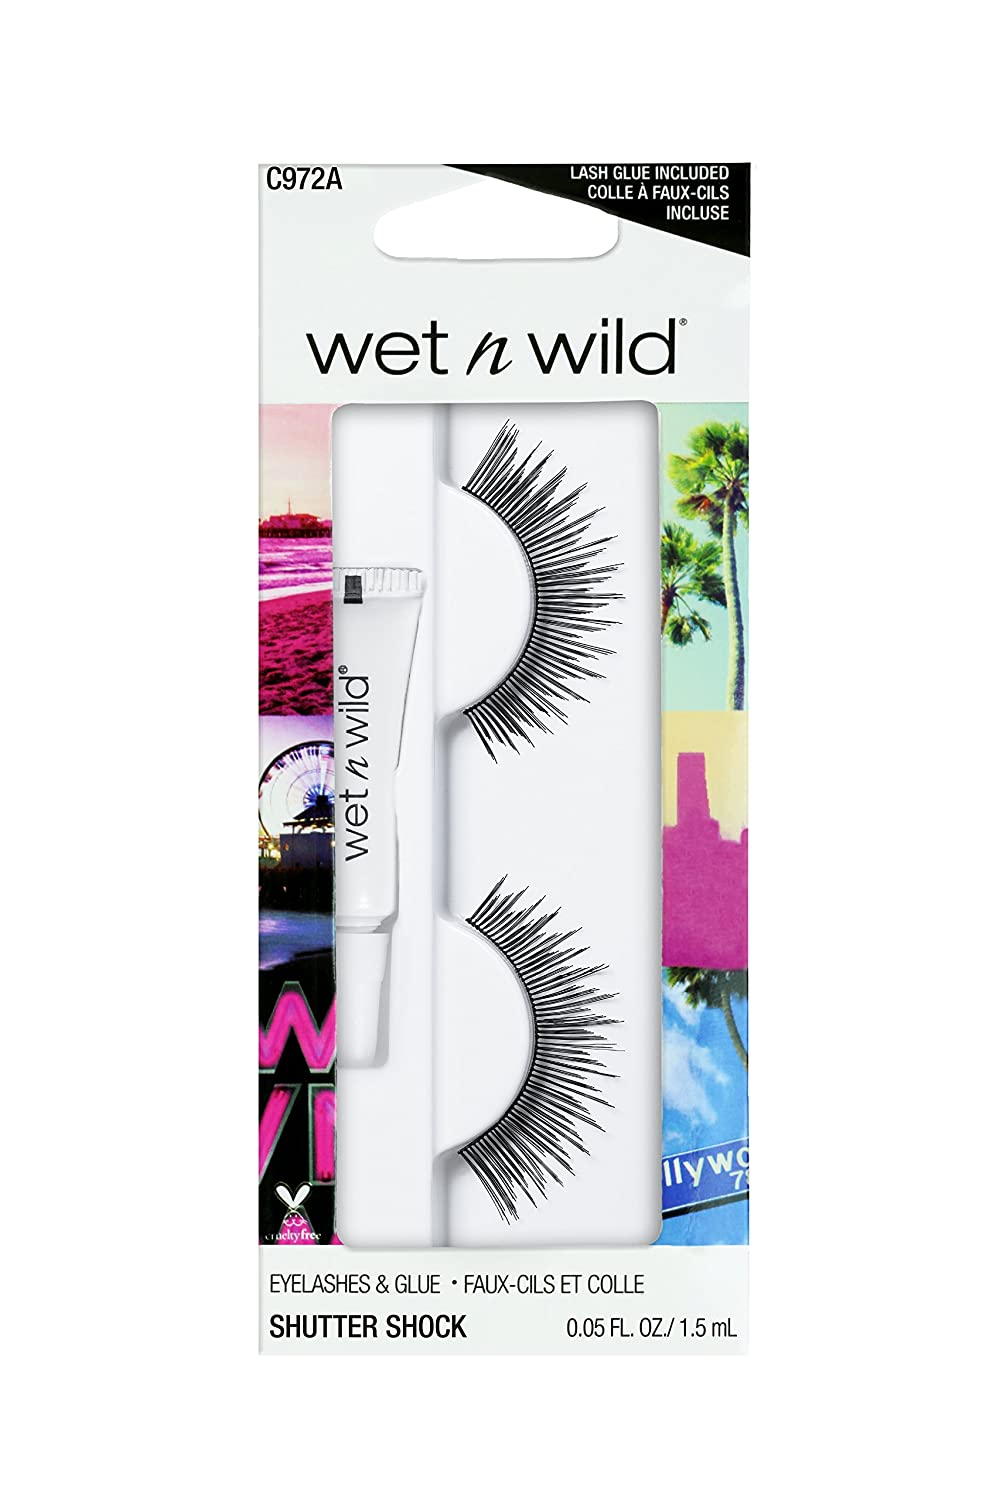 ebd760dbdce Amazon.com : wet n wild False Lashes, Shutter Shock, 1 Fluid Ounce : Beauty